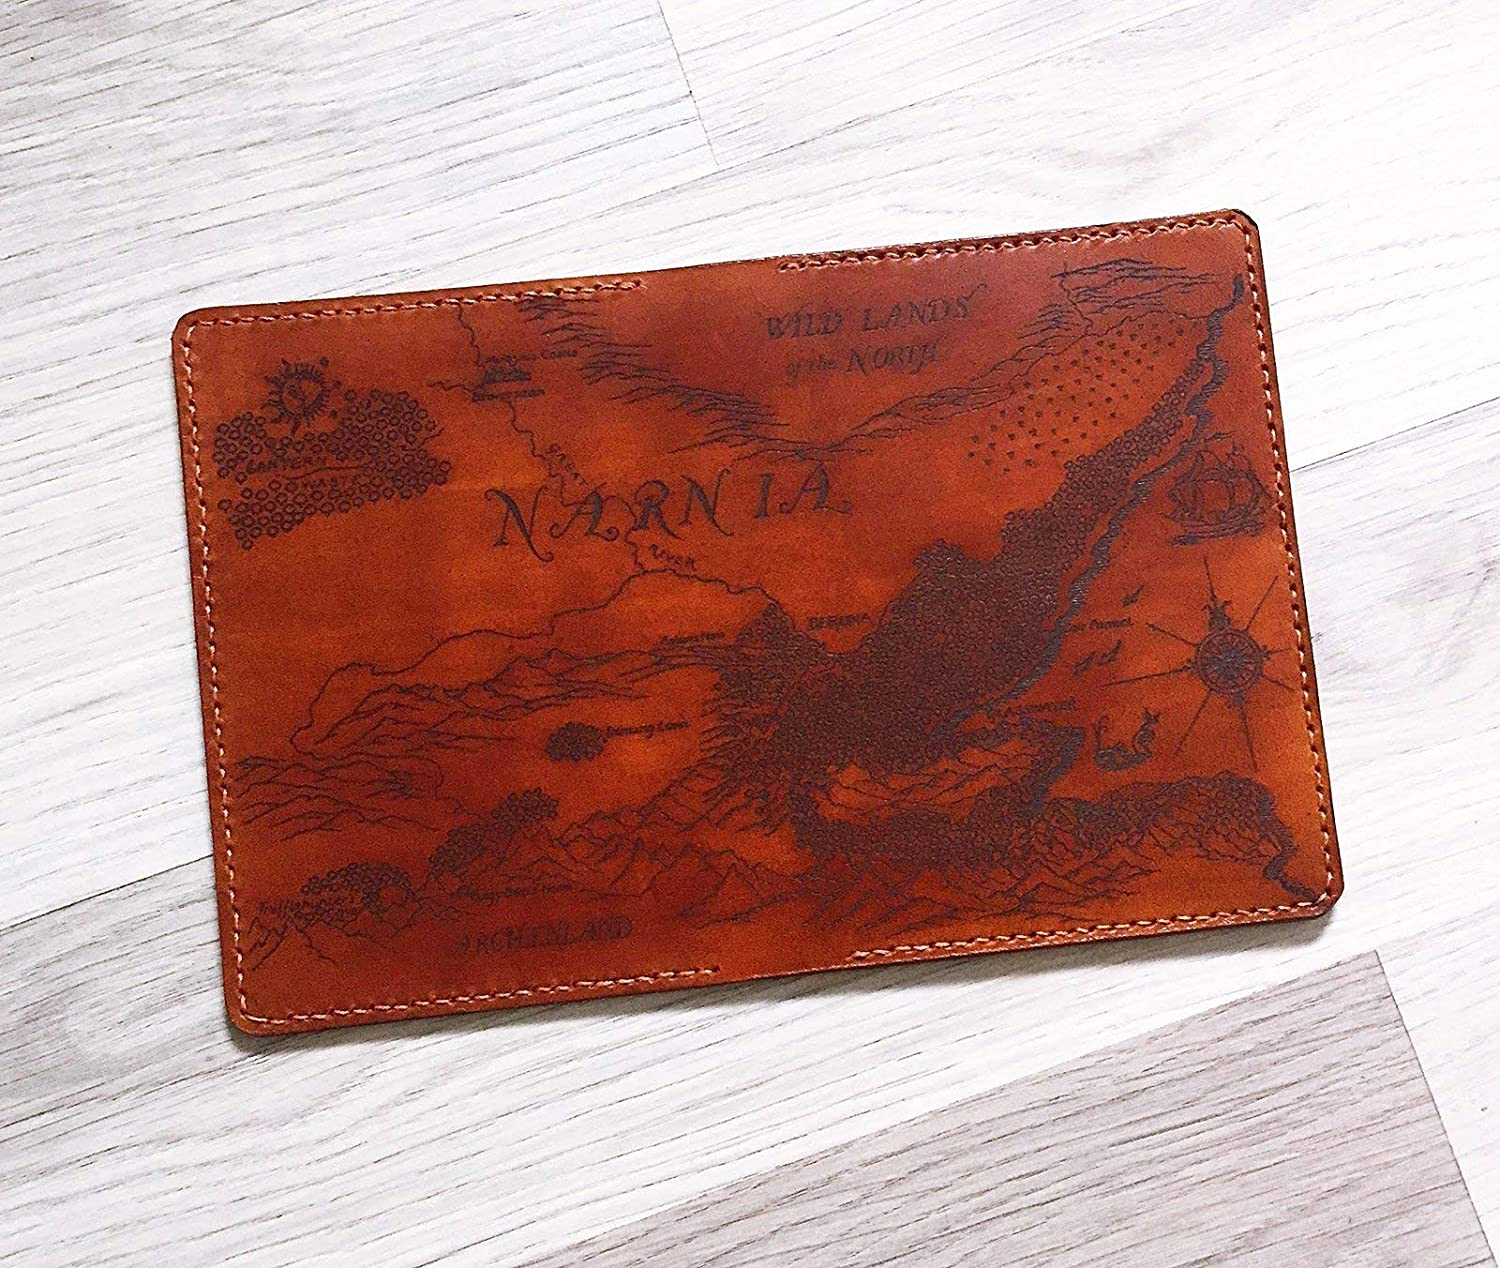 The Chronicles of Narnia Personalized leather handmade passport cover holder wallet case gifts